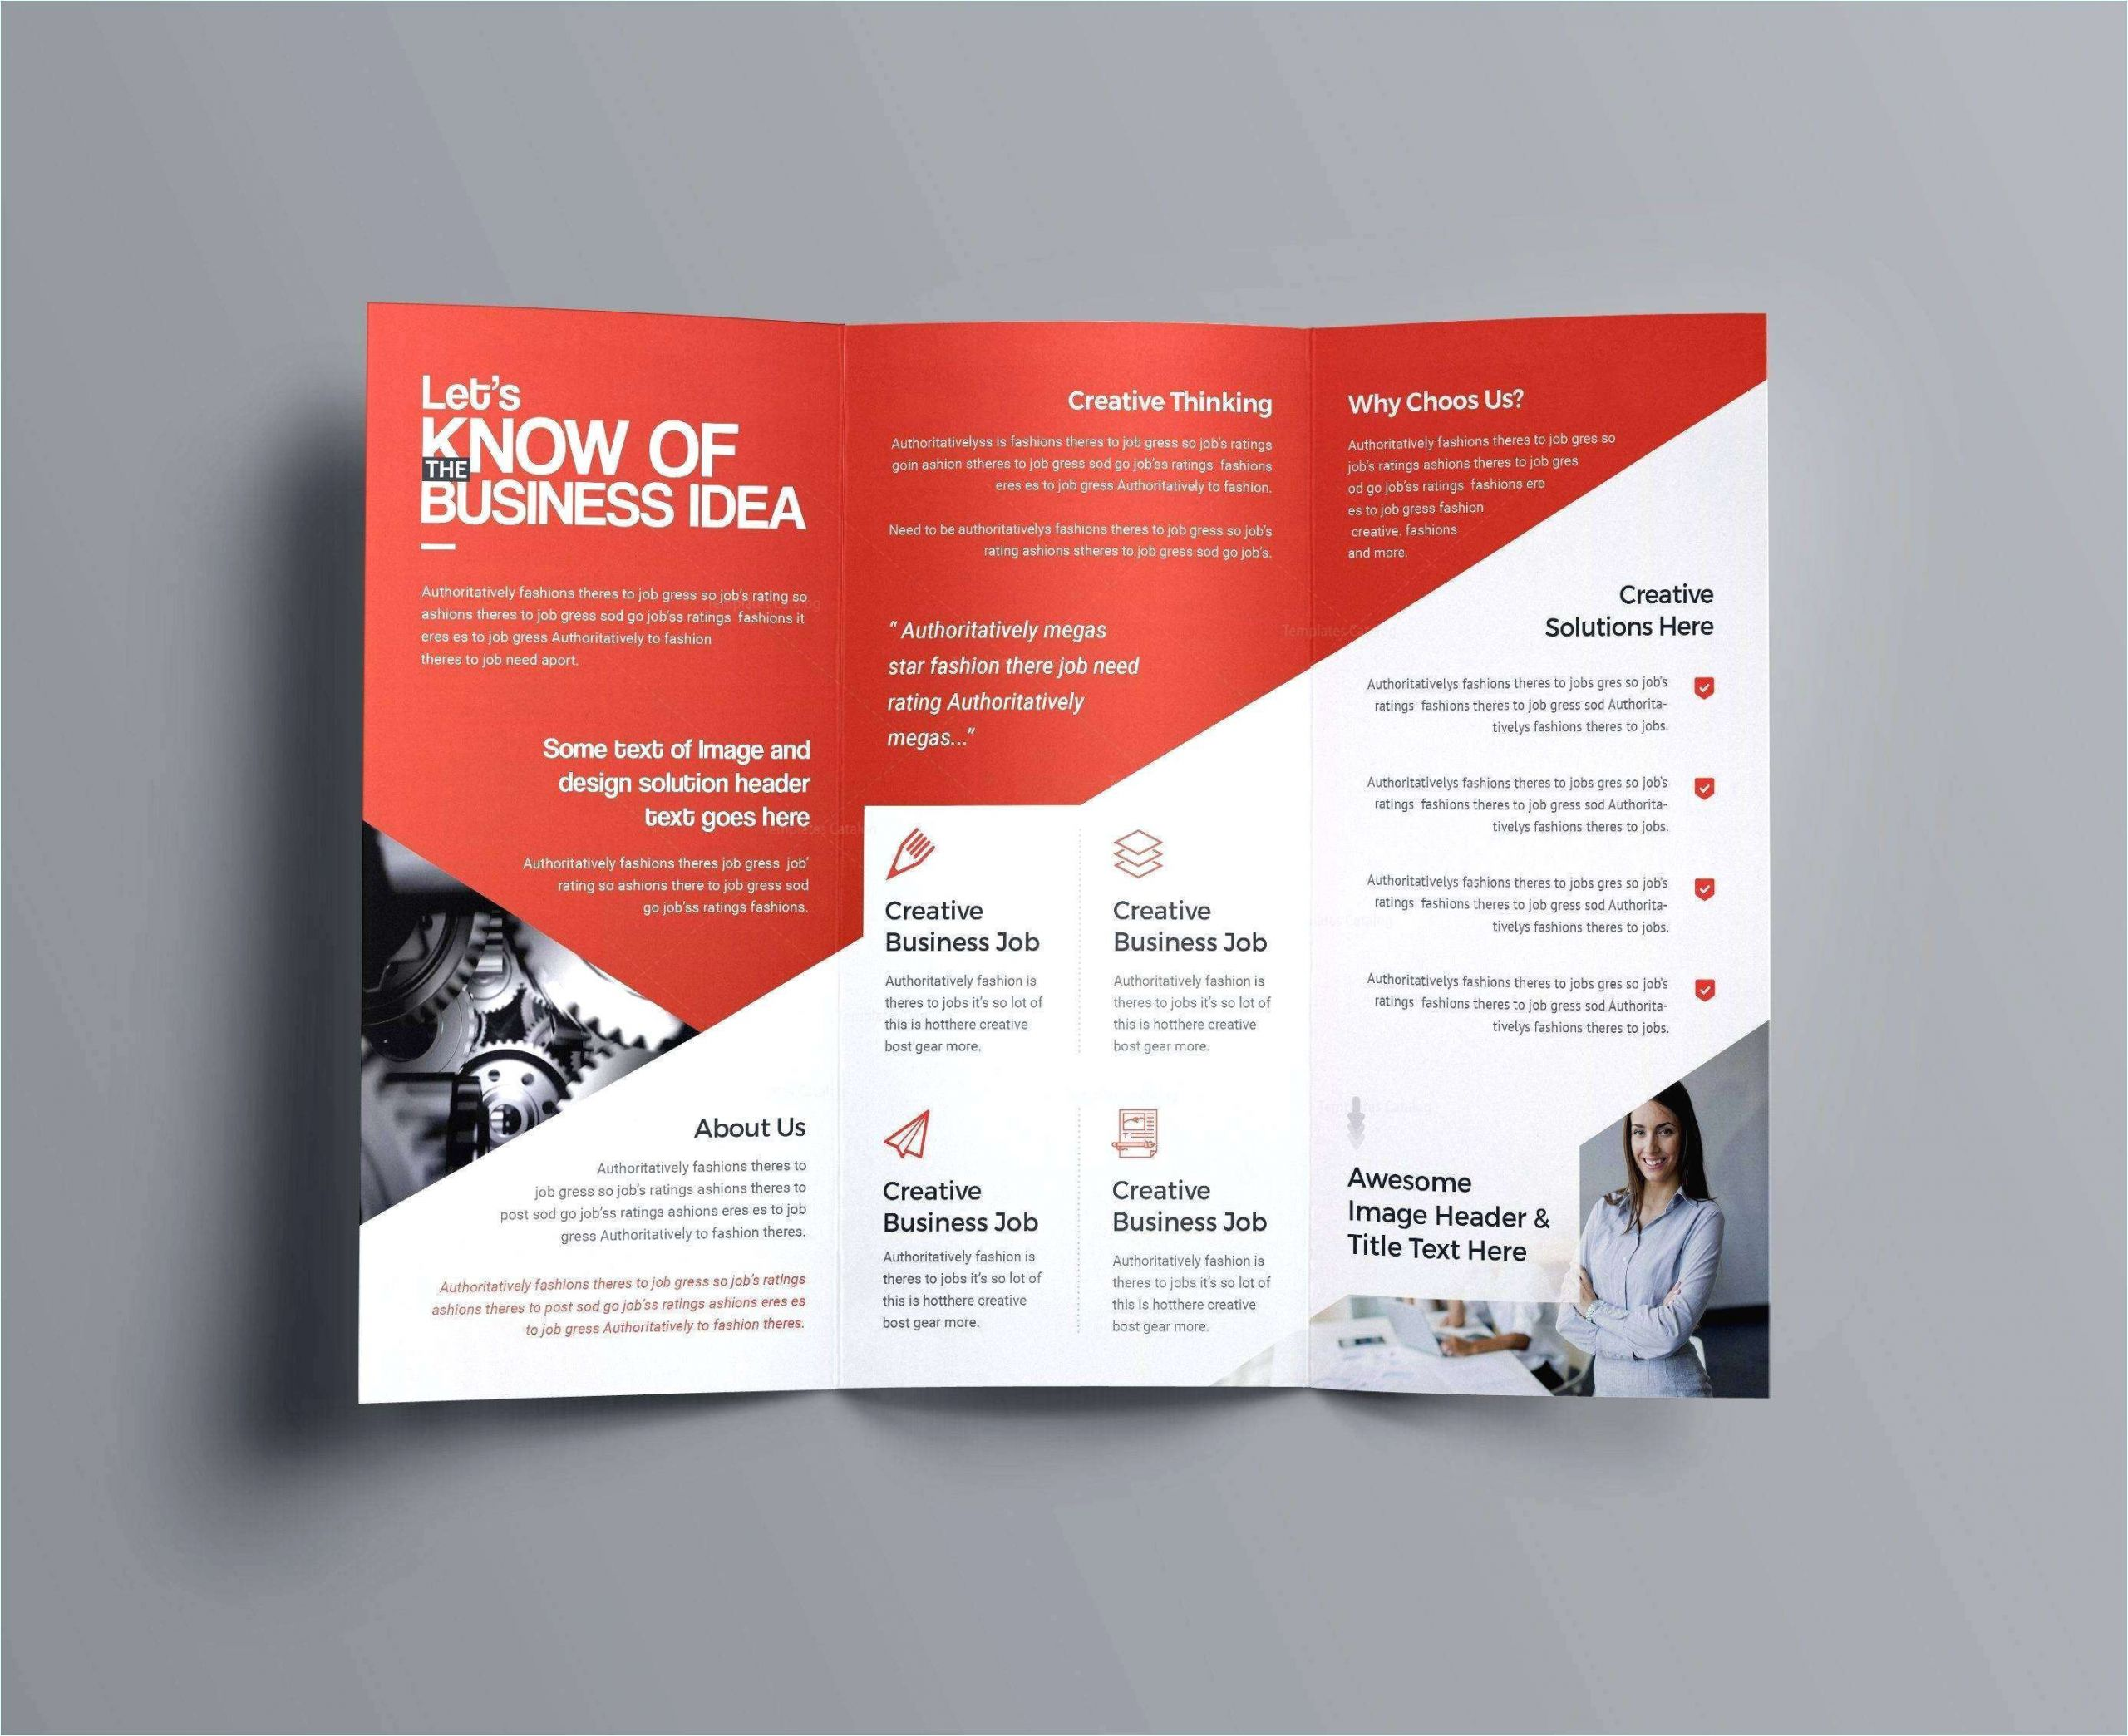 c2a2ec29ce280a0 c2a2c28be280a0c285 cyber security ppt free download awesome process of download free business card templates of download free business card templates jpg